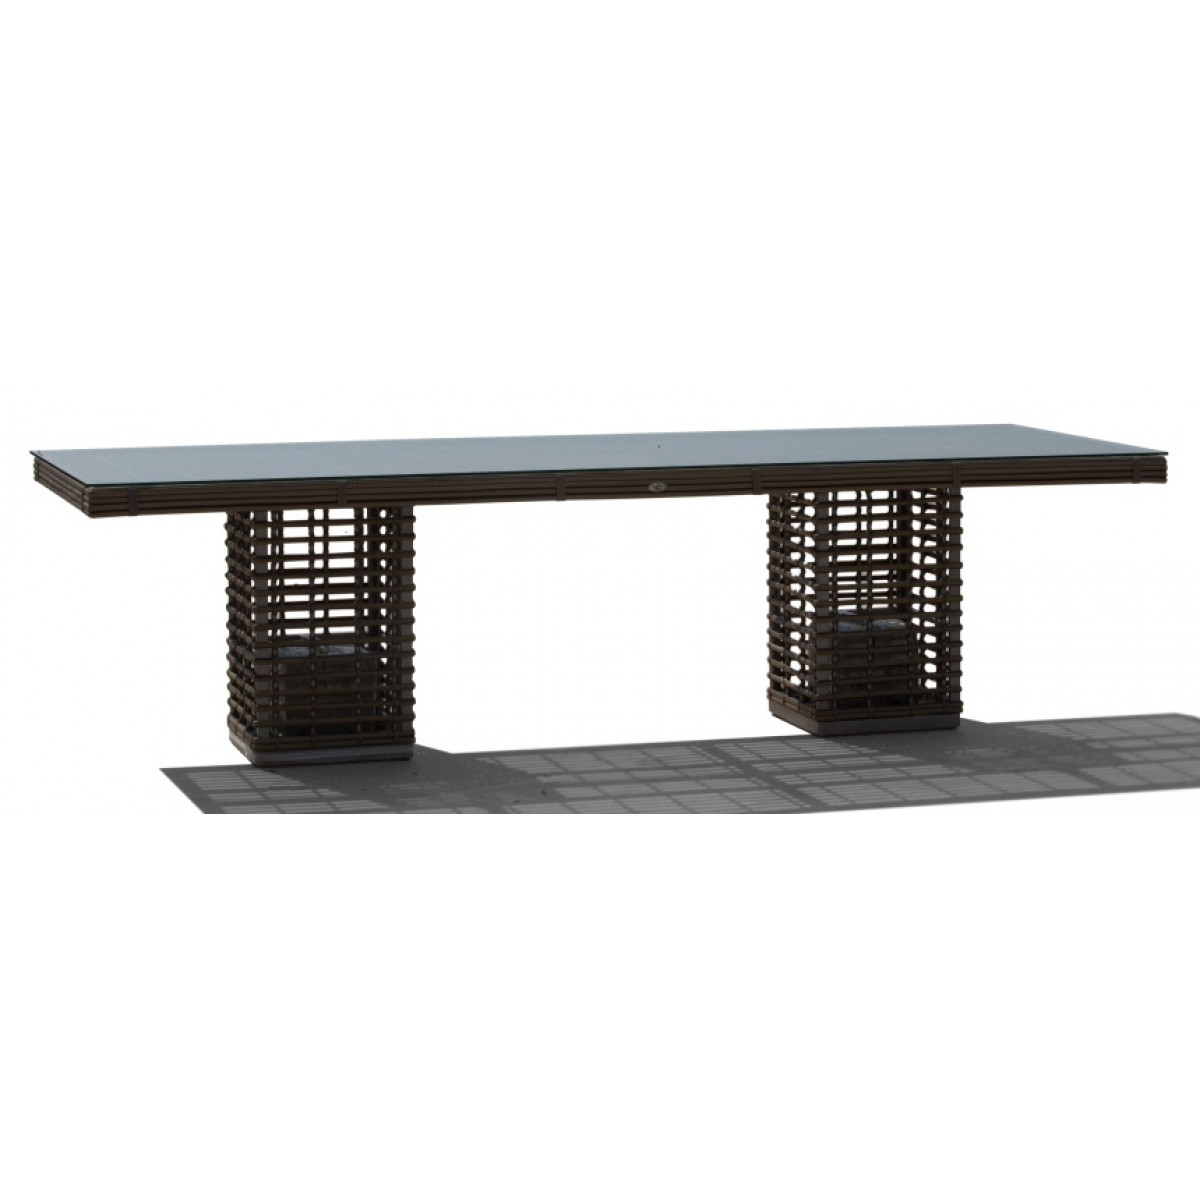 Skyline Castries Rattan 8 Seater Rectangle Table